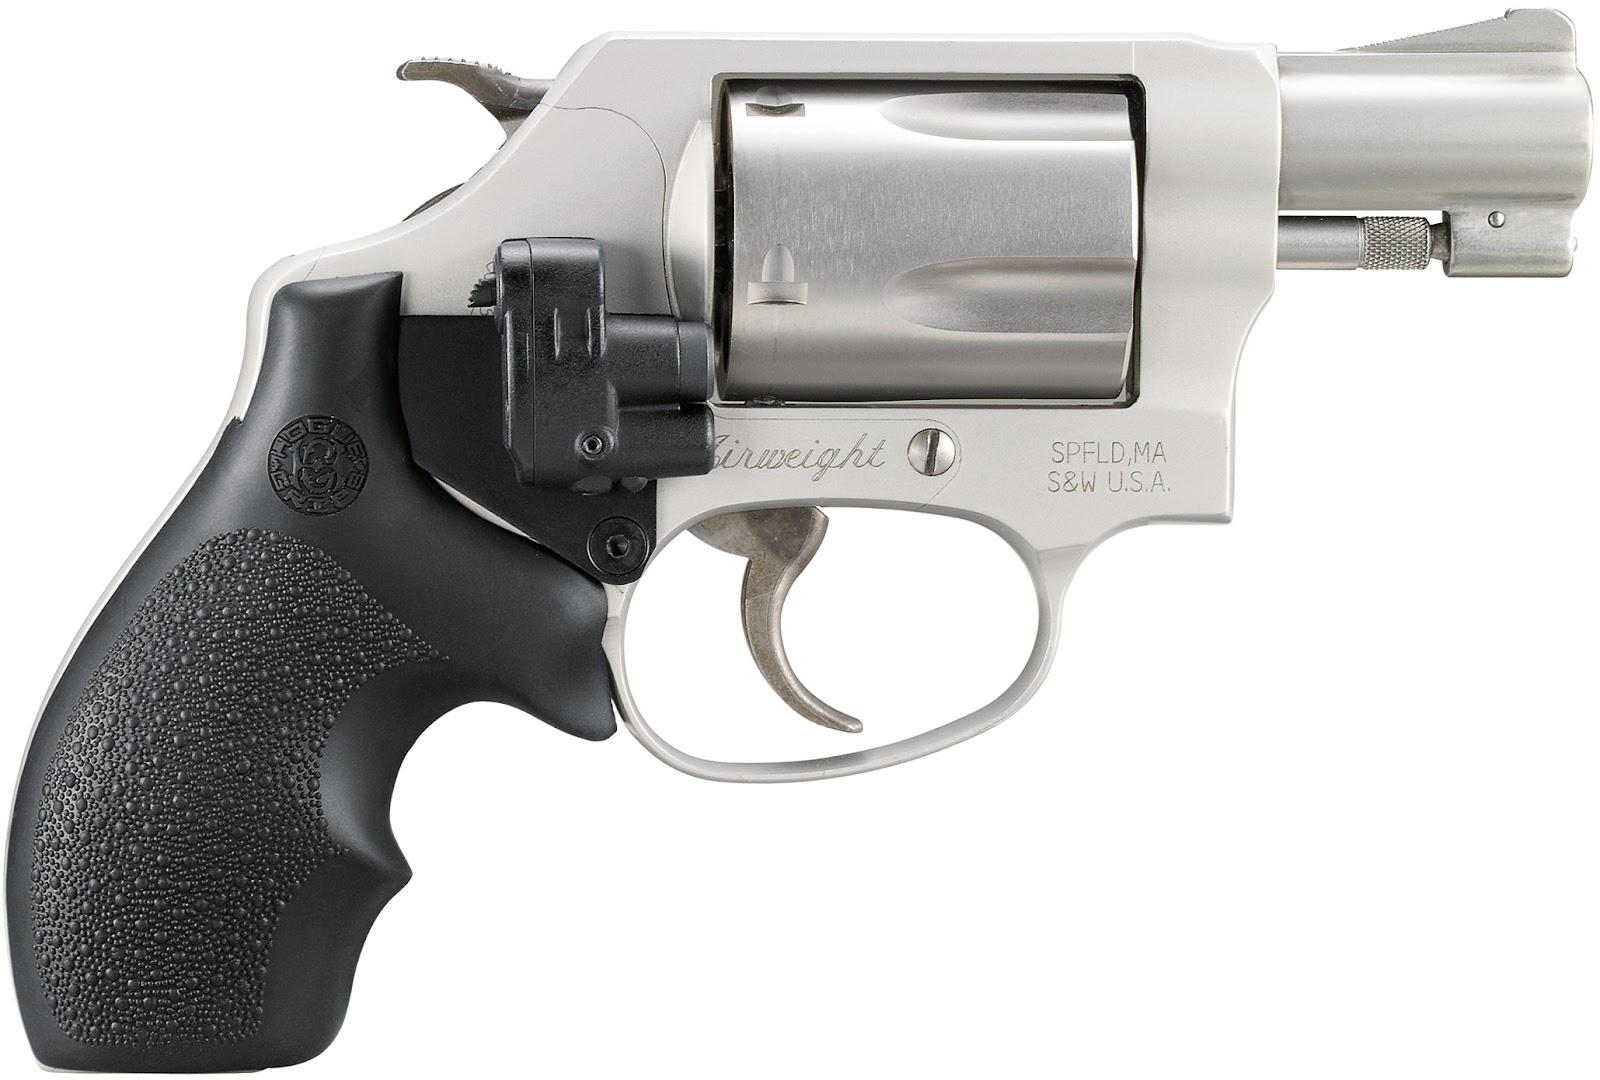 dating smith and wesson frame revolvers judge